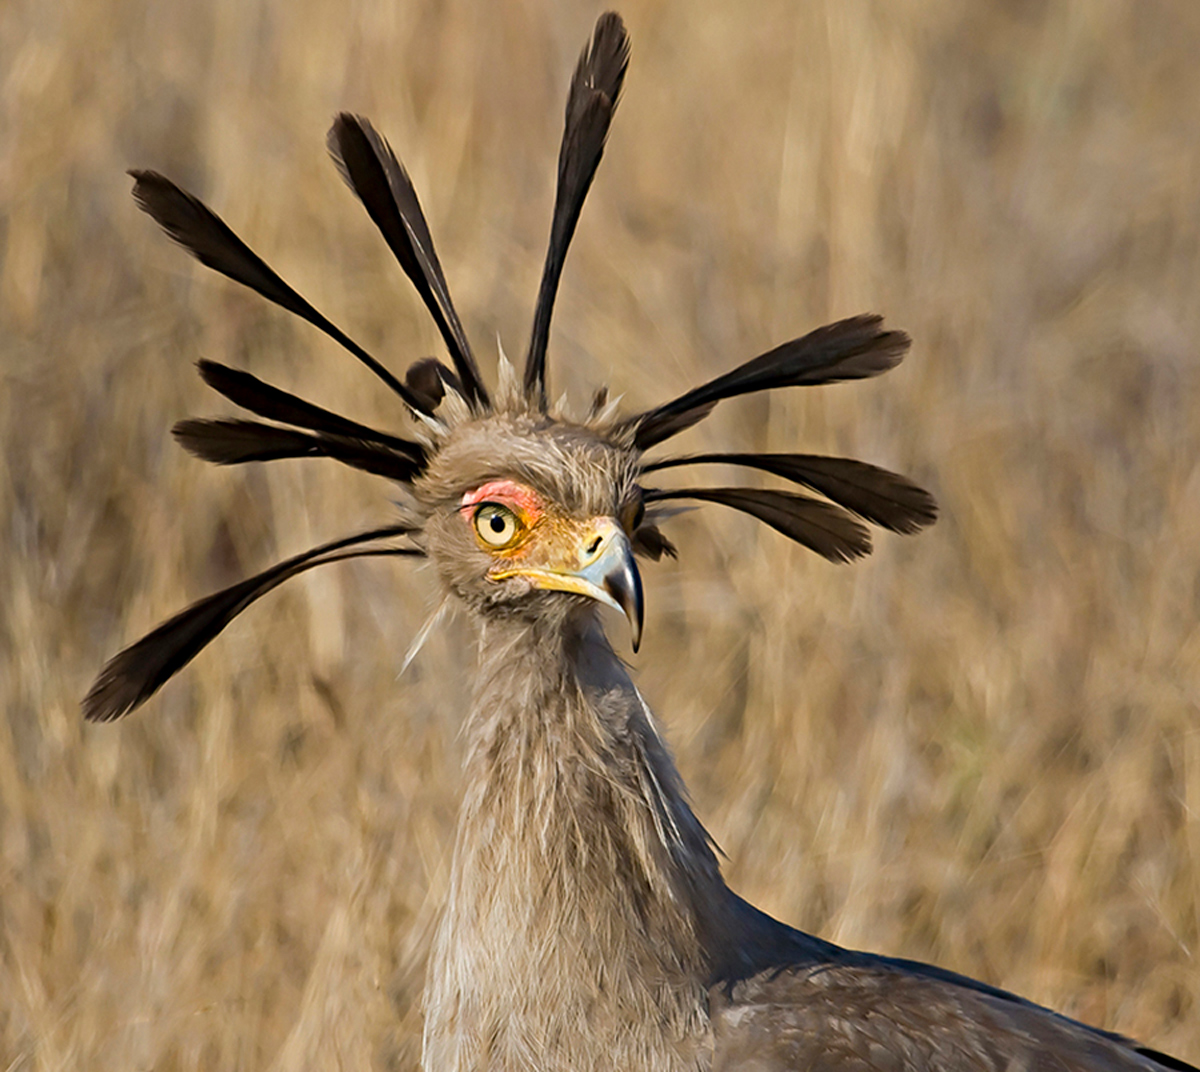 A subadult secretary bird spotted in Kruger National Park, South Africa © Carol Barry